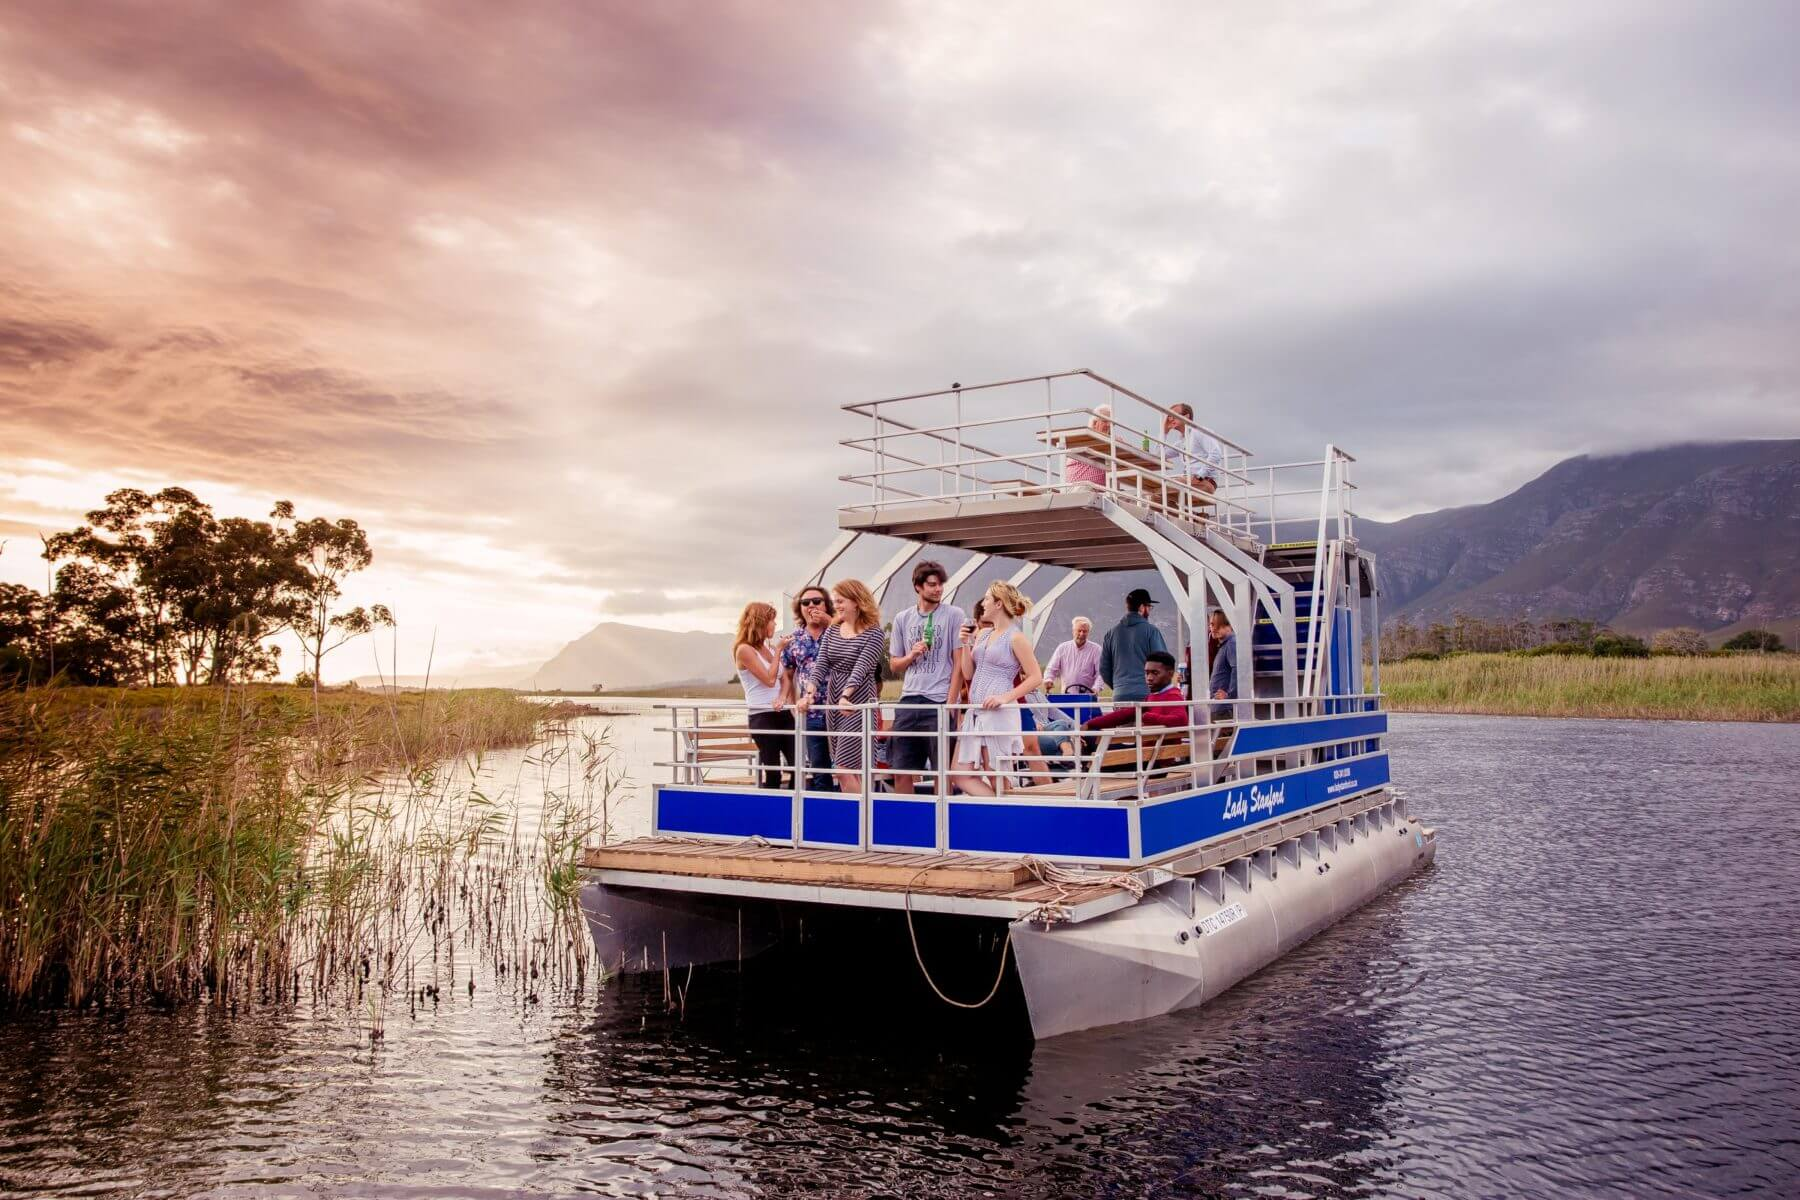 lady-stanford-cruises-–-enjoy-a-leisurely-boat-cruise-along-the-klein-river